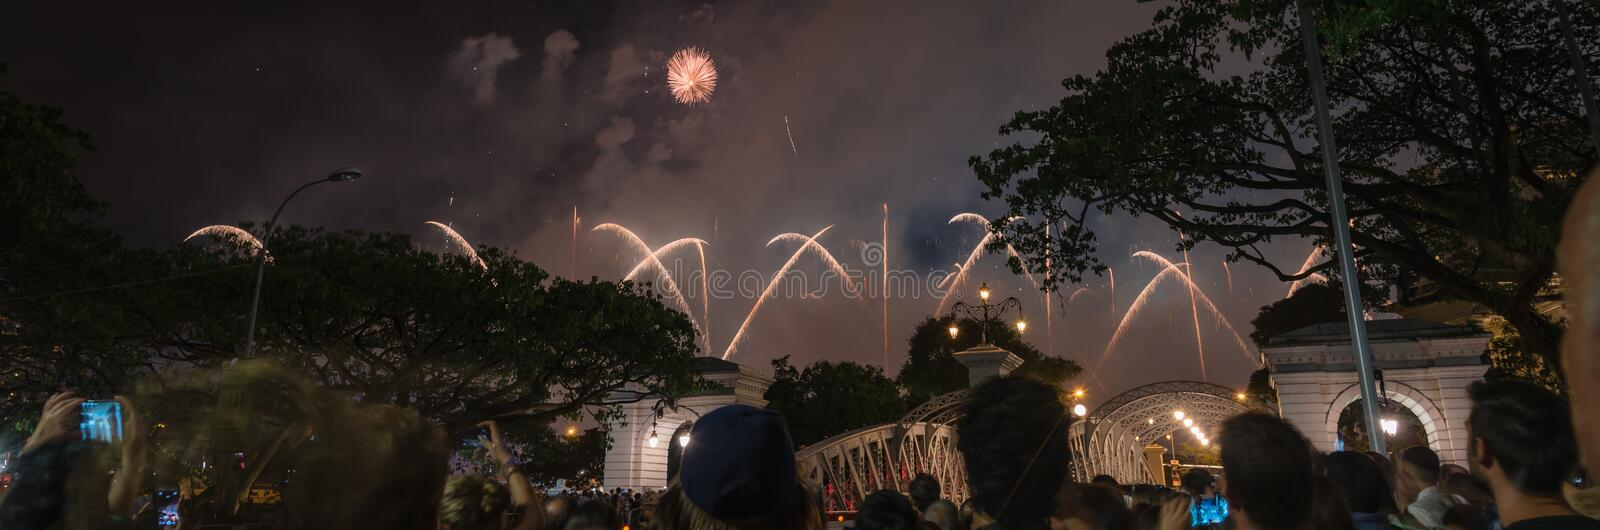 Panoramic firework display celebrating New Year party with blurry people watching in Singapore royalty free stock image